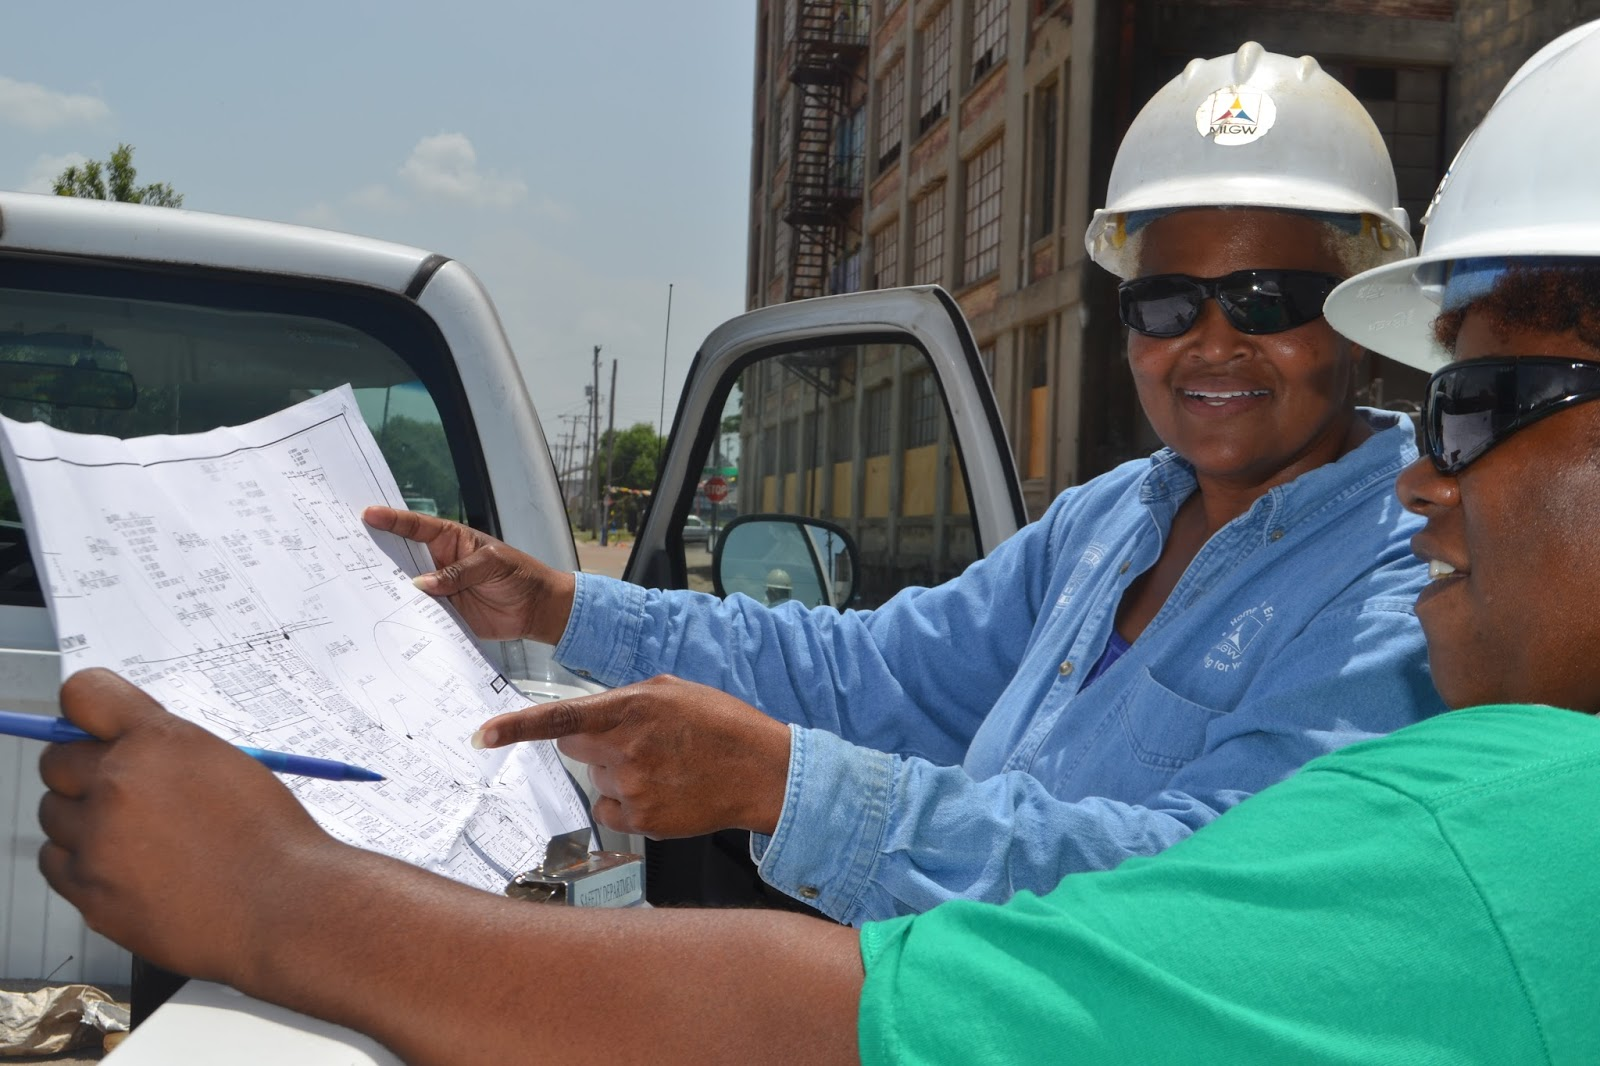 bird on a wire forum guides women on the ins and outs of utility work on left glynis finnie map and blue shirt